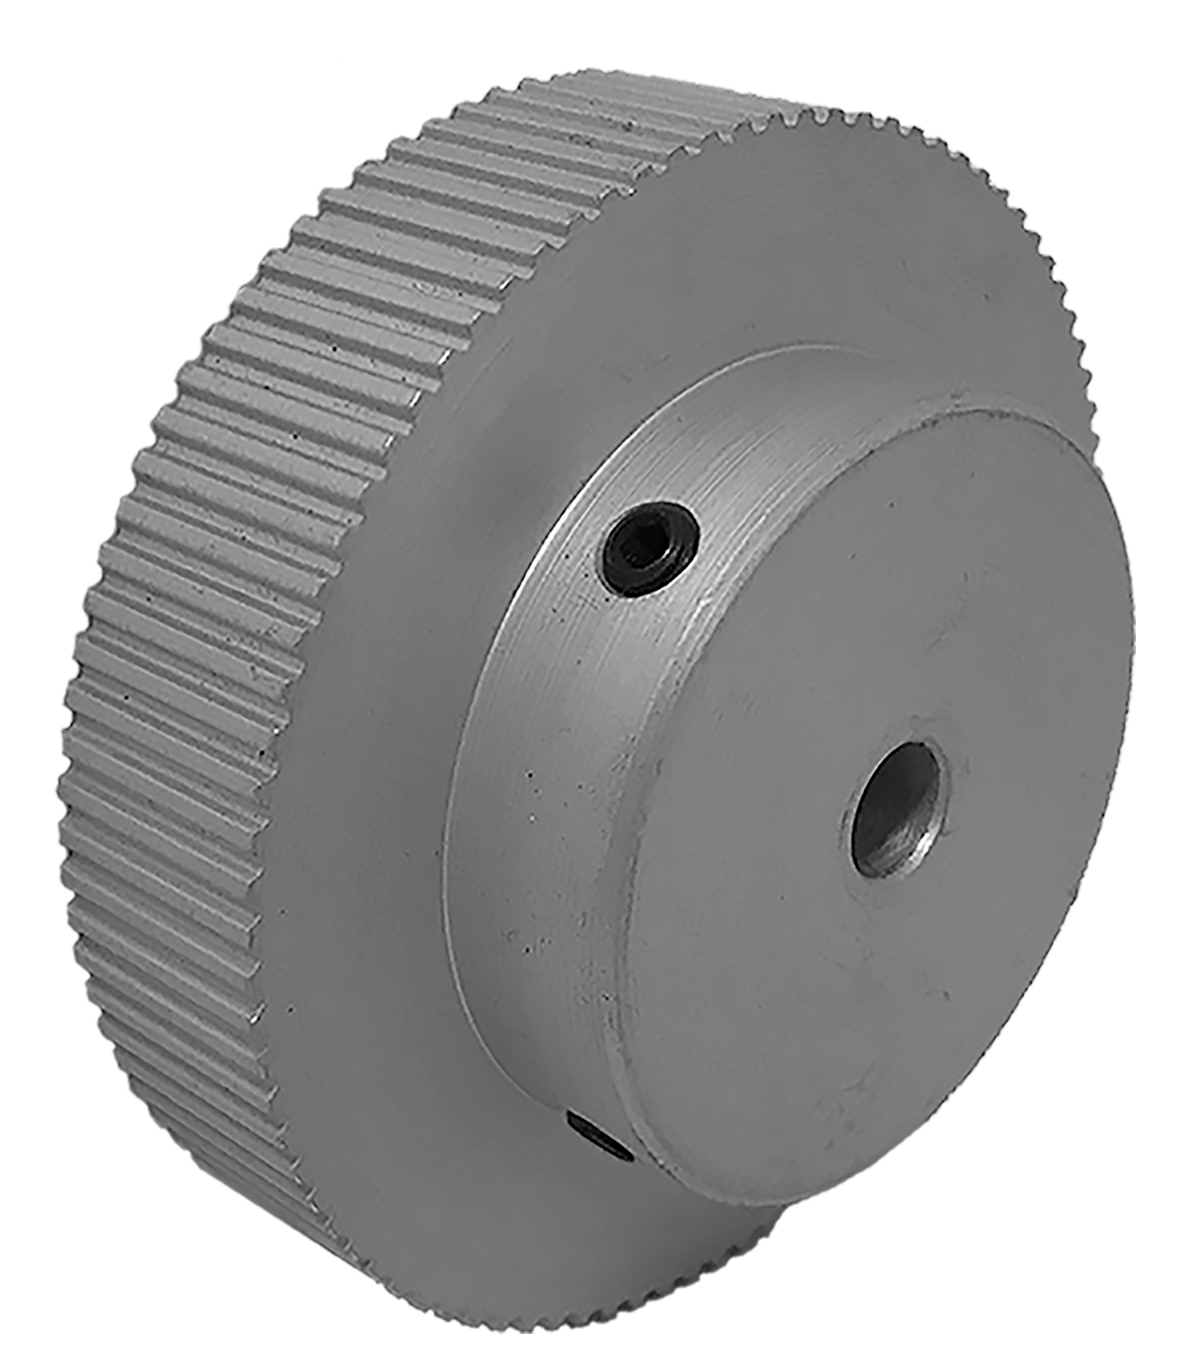 100LT312-6A5 - Aluminum Imperial Pitch Pulleys